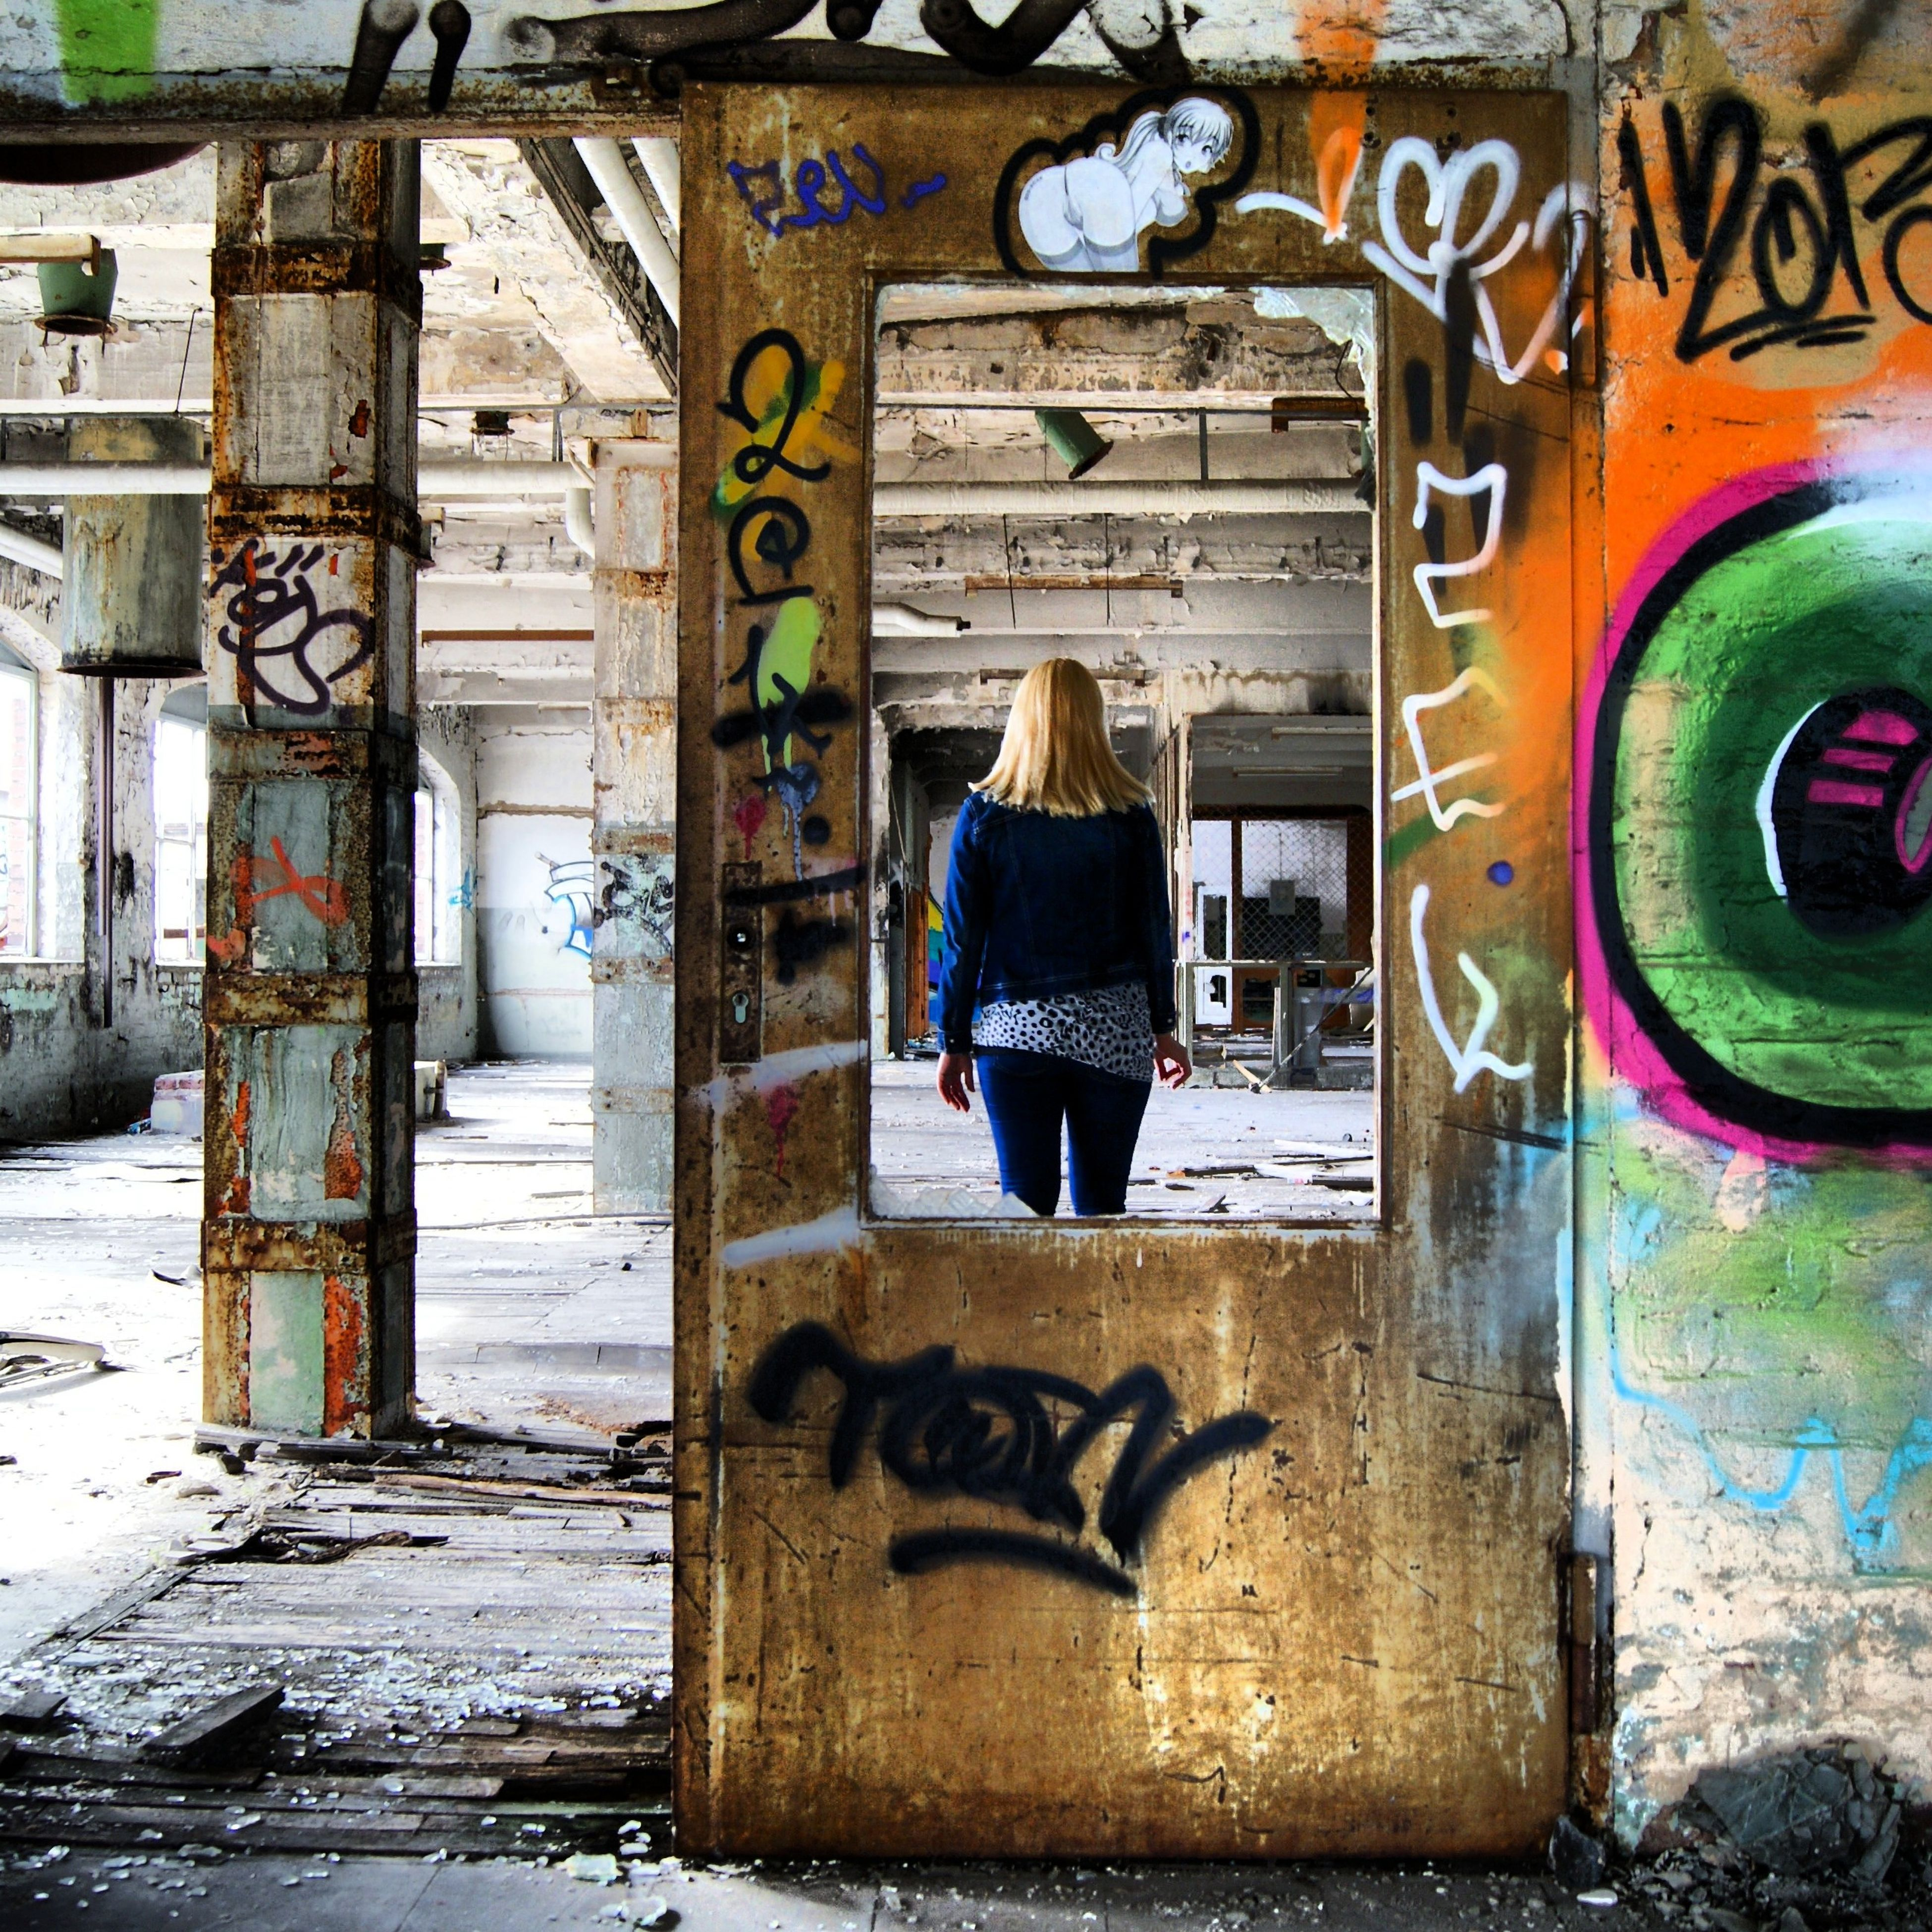 graffiti, text, western script, communication, built structure, architecture, art, wall - building feature, creativity, art and craft, building exterior, street art, wall, vandalism, non-western script, capital letter, day, no people, weathered, outdoors